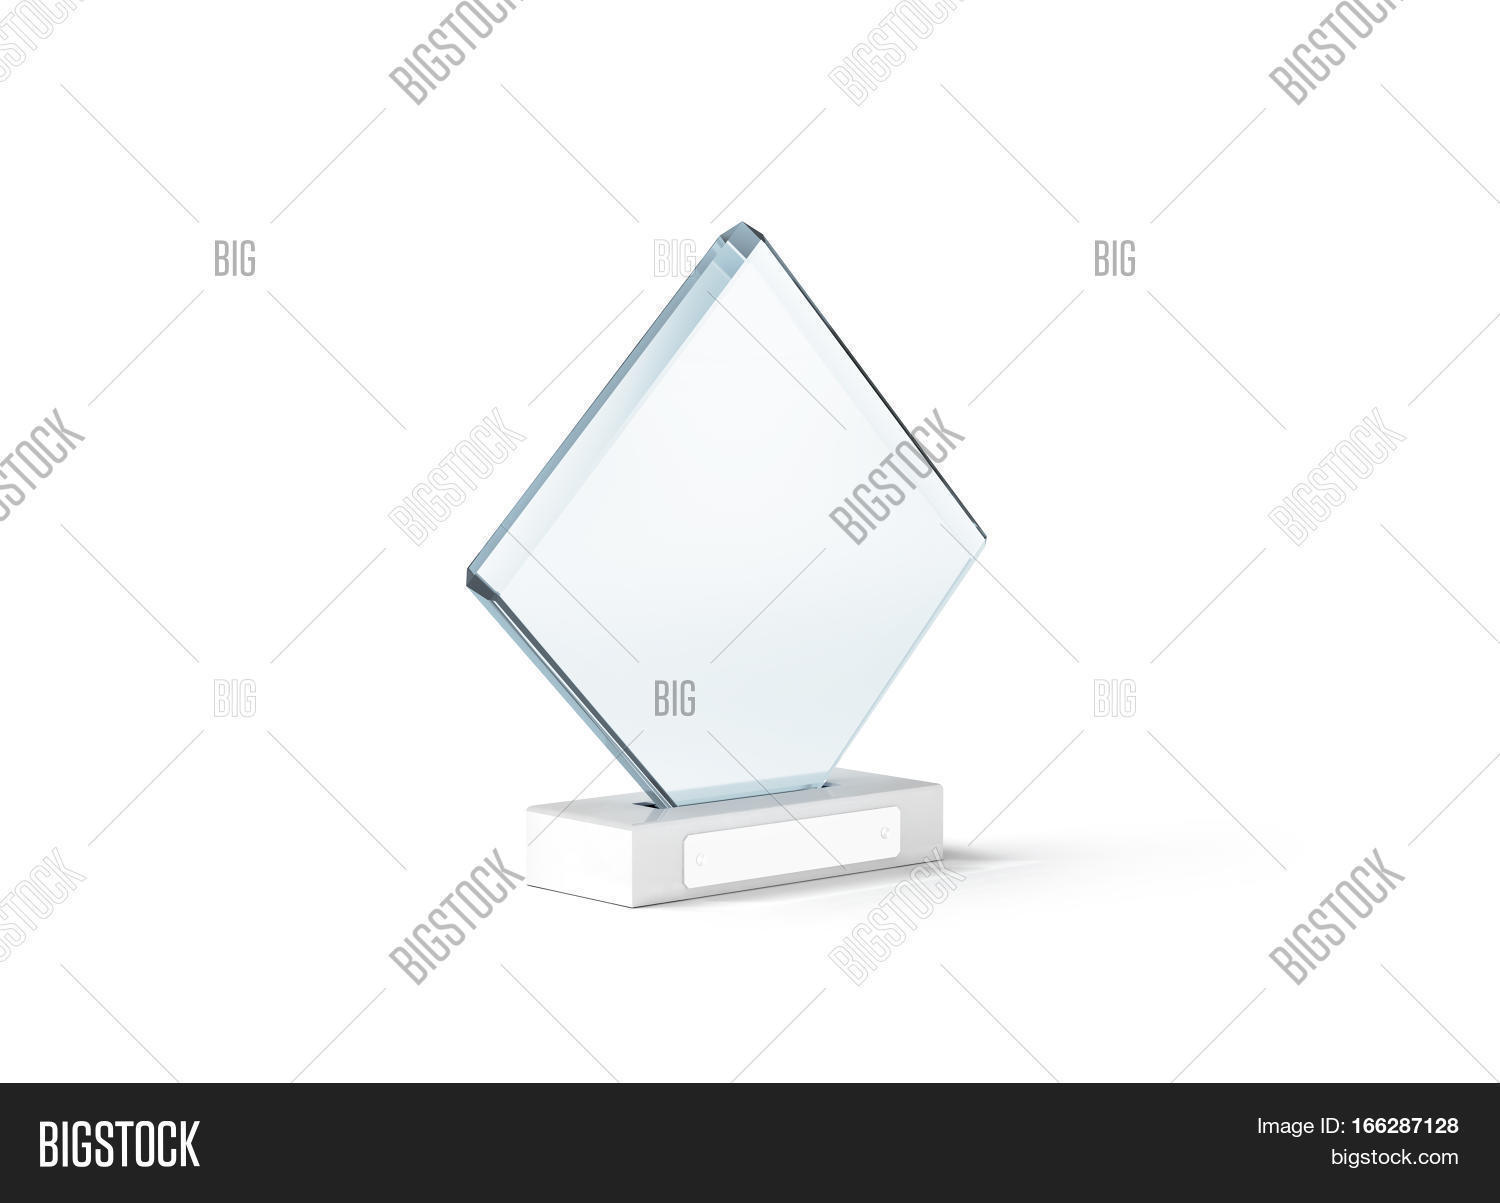 Blank Glass Trophy Image & Photo (Free Trial) | Bigstock